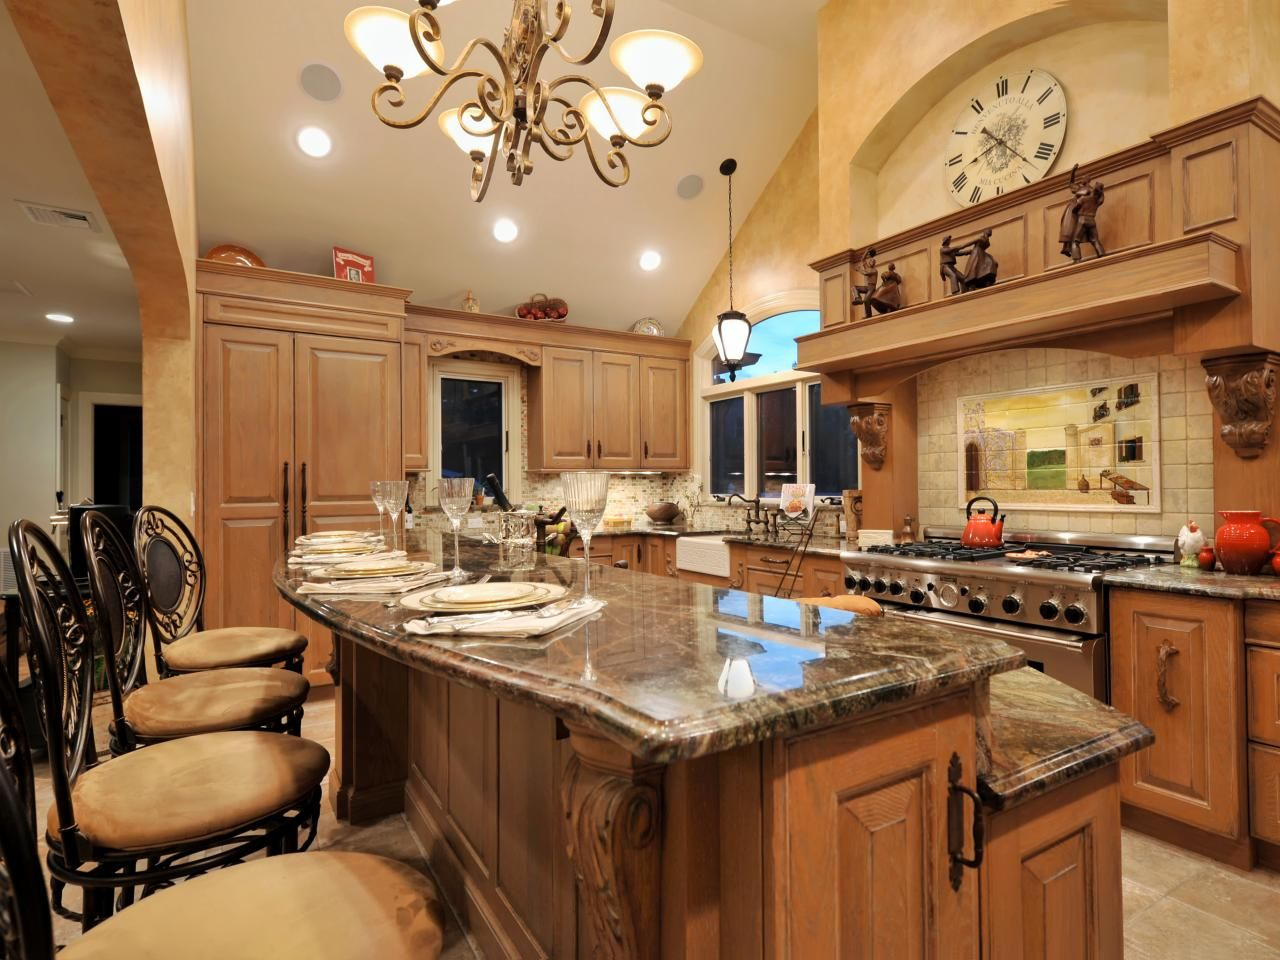 Kitchen Island 2 Tier a two-tiered kitchen island with granite countertops provides bar